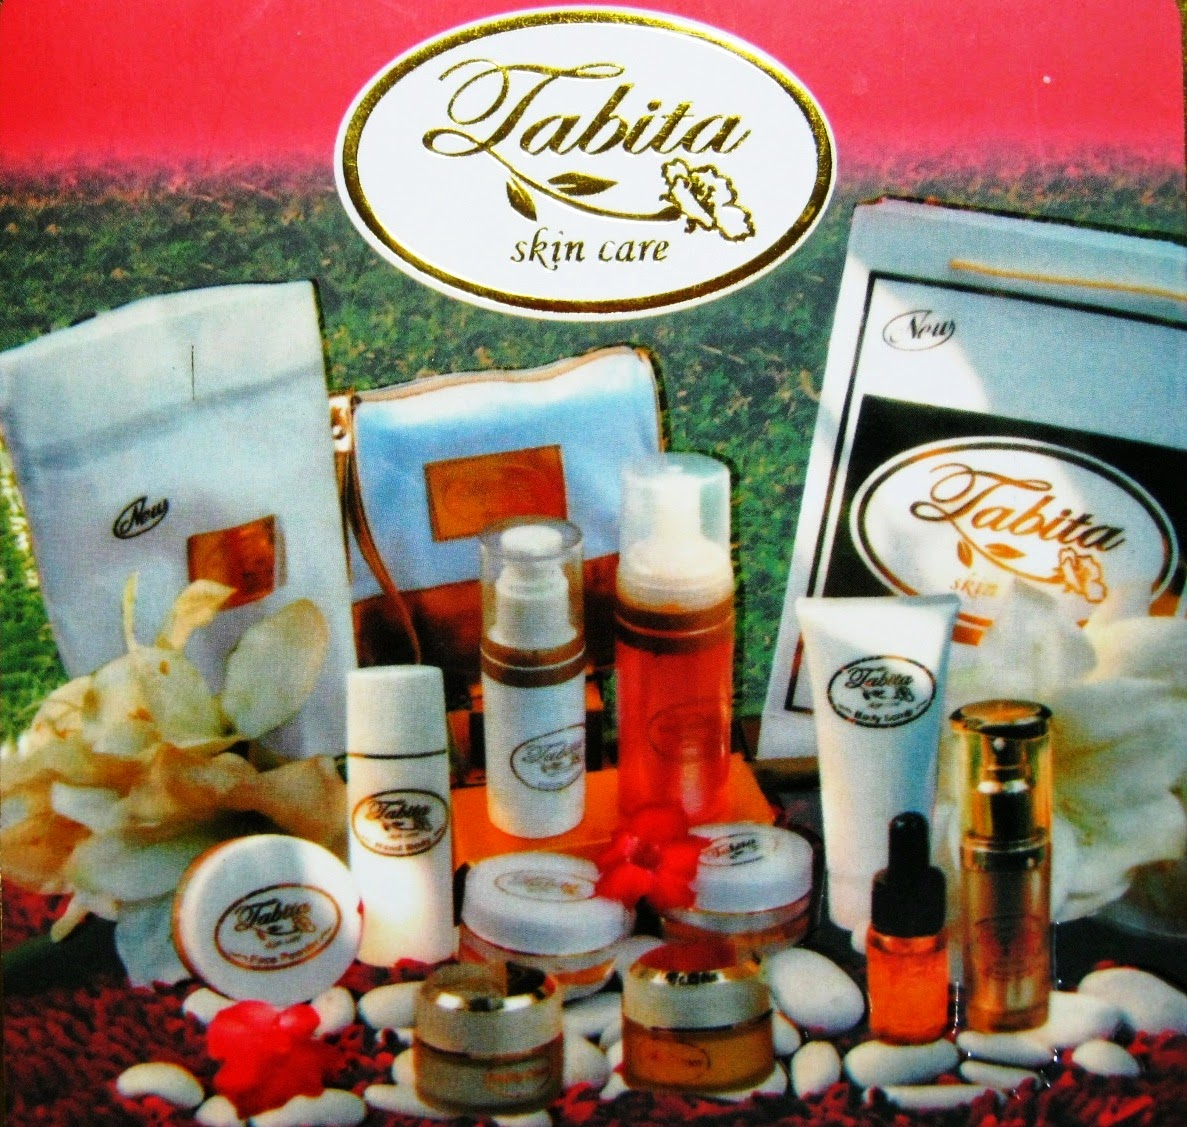 AH Health Amp Beauty Shop Loose Item Tabita Skincare